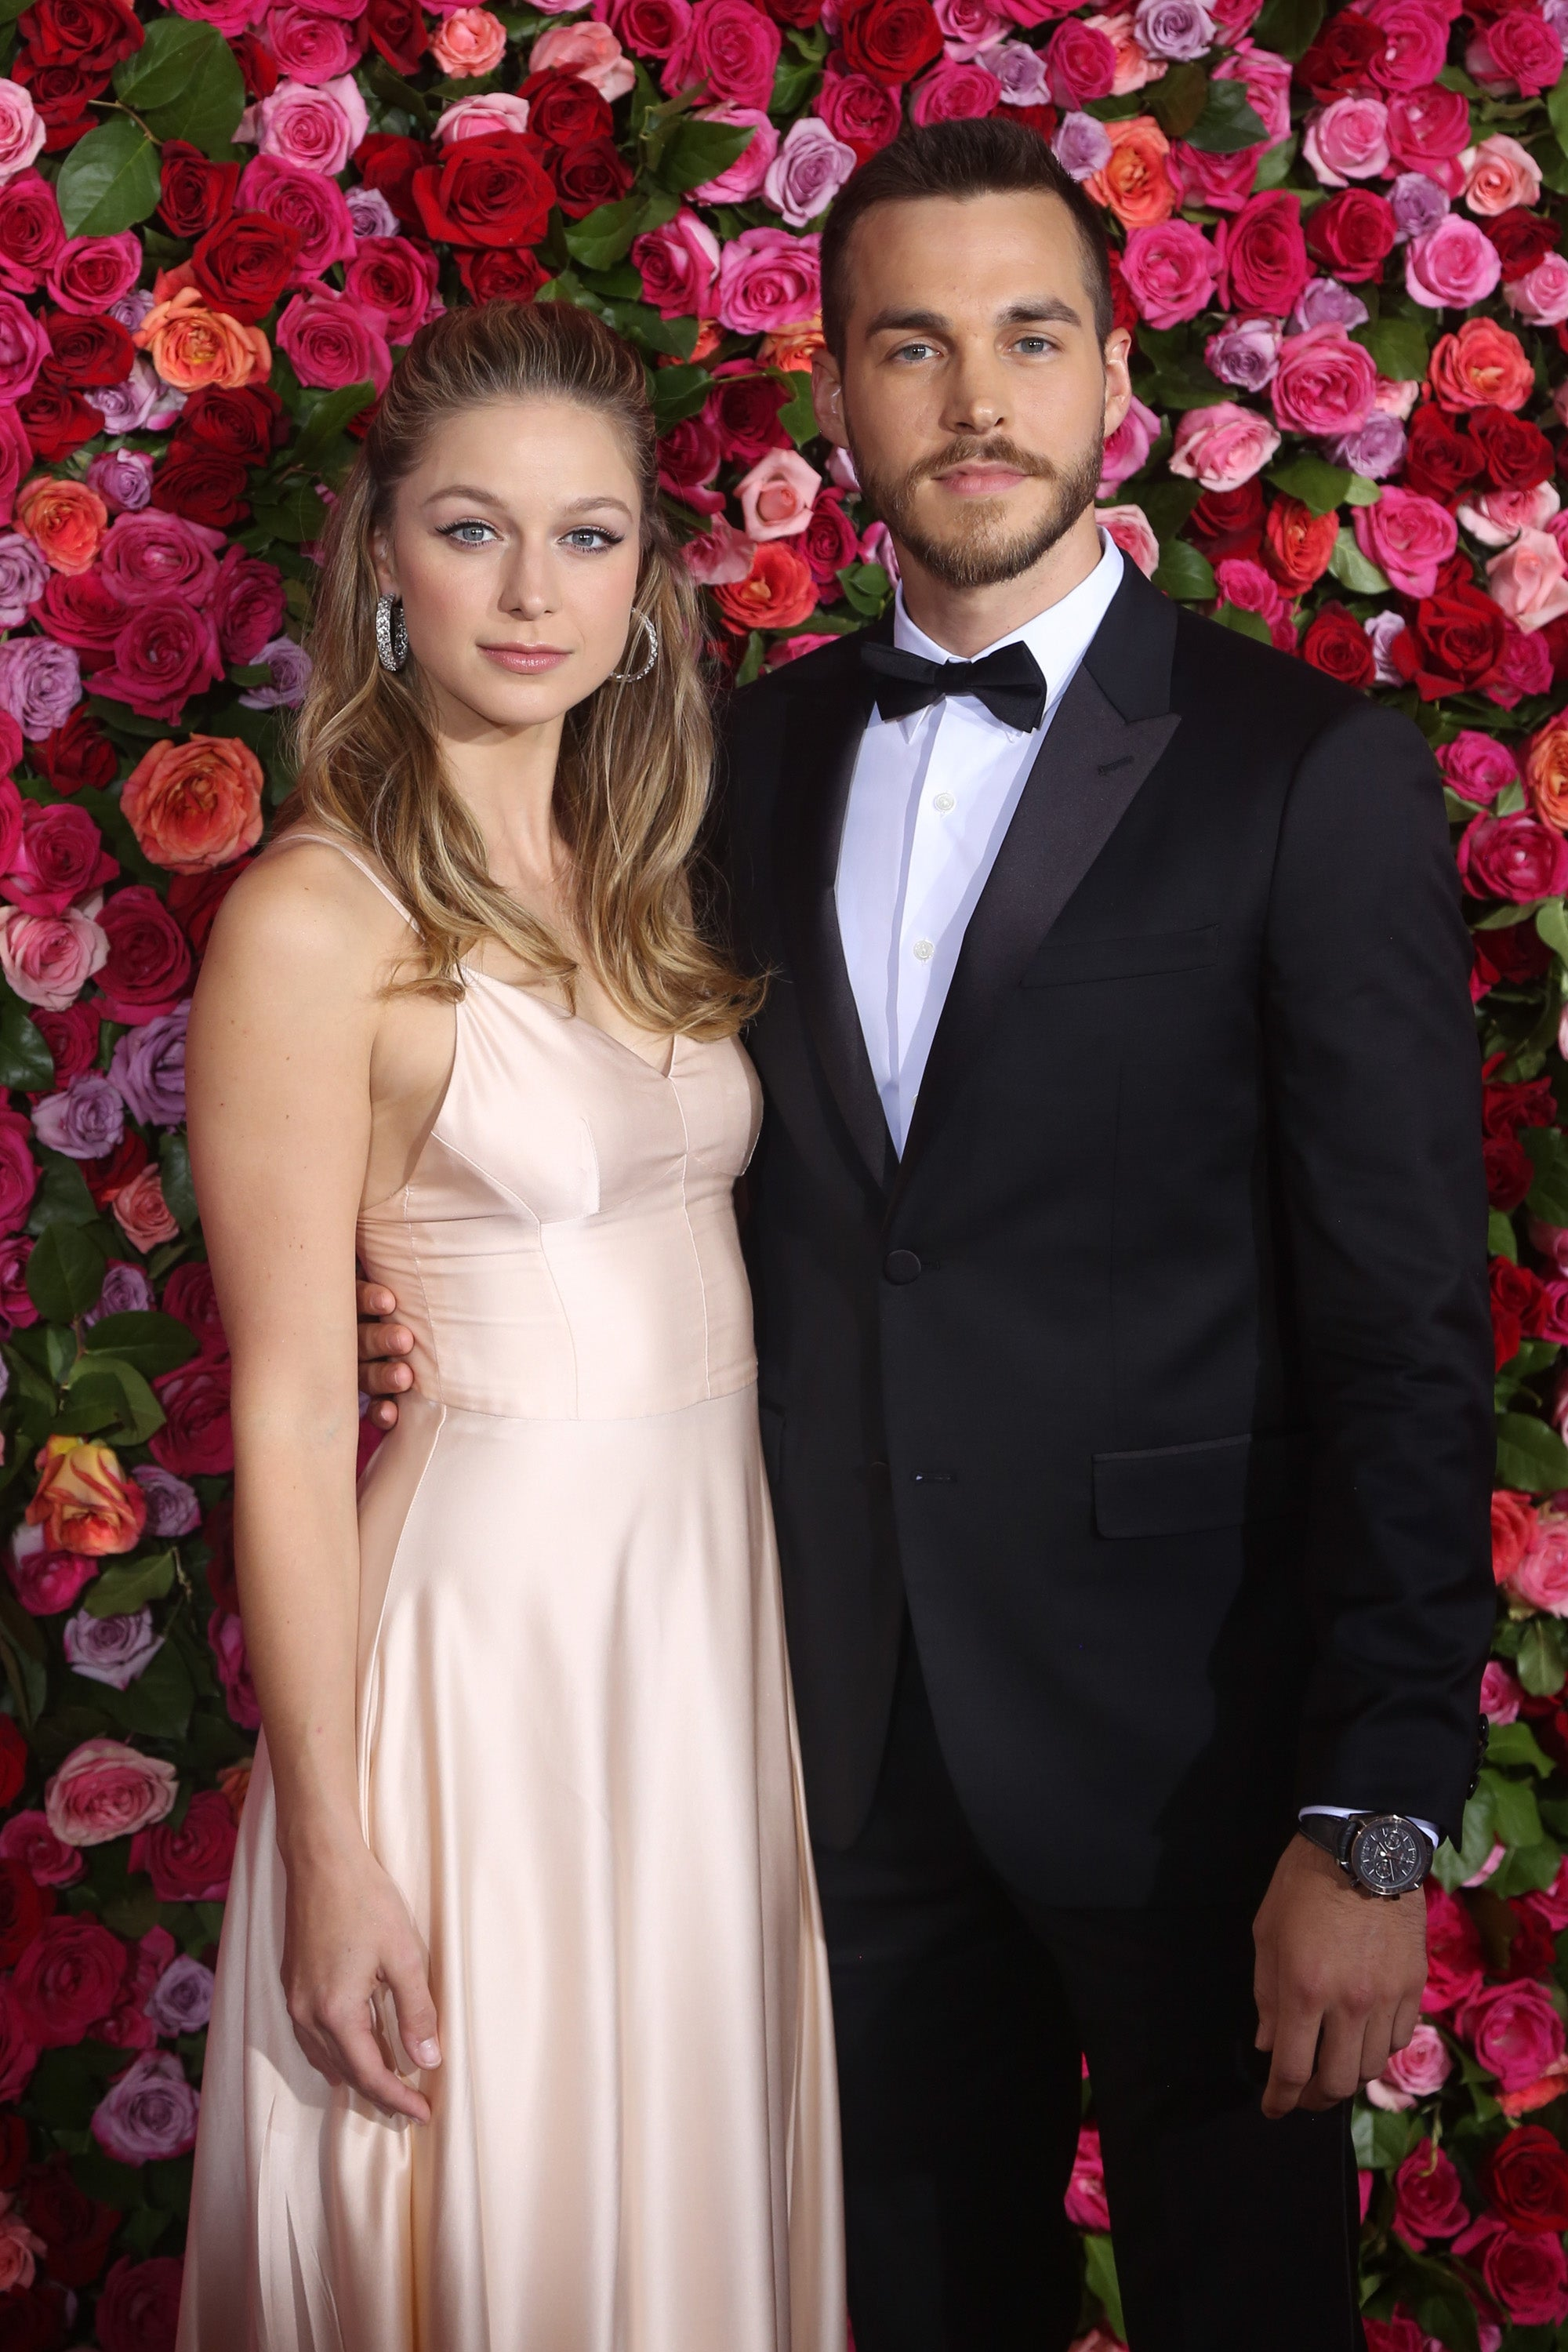 'Supergirl' Co-Stars Melissa Benoist and Chris Wood Tie the Knot